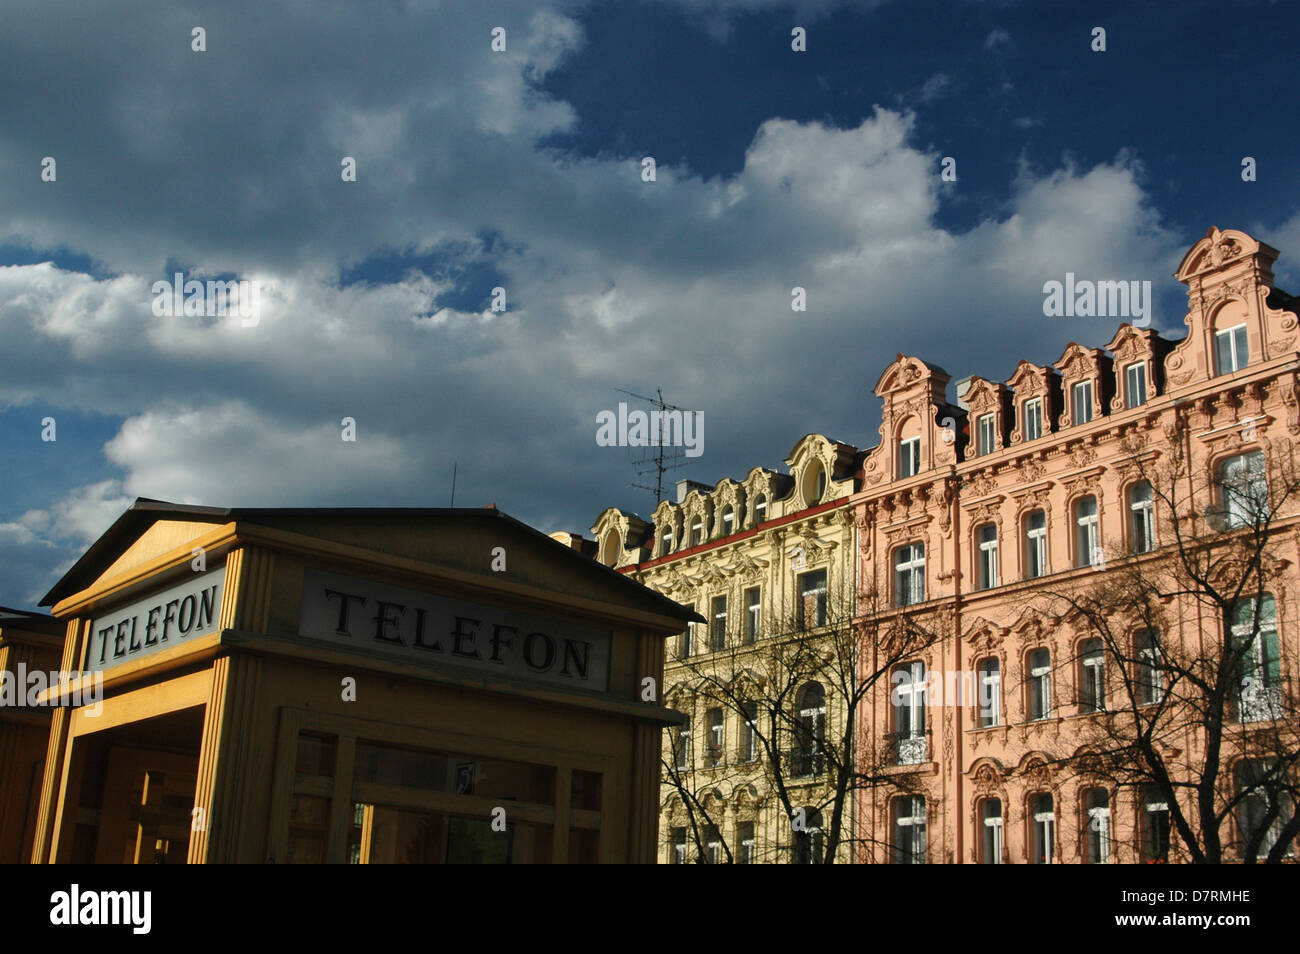 Old style telephone kiosk and classic houses in Karlovy Vary, Czech Republic, Europe - Stock Image